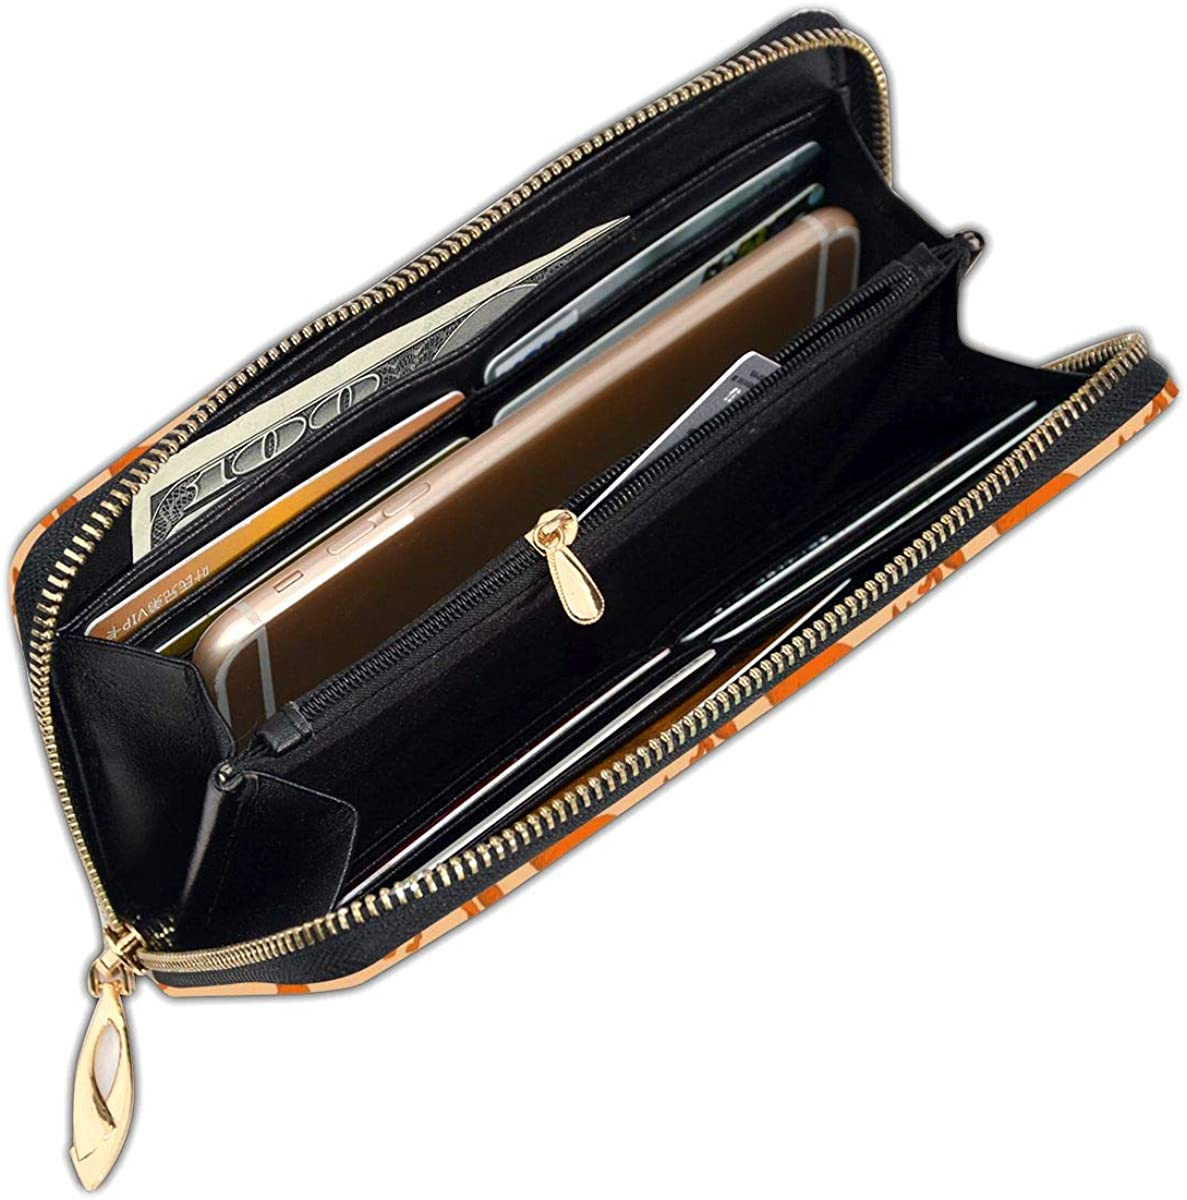 FeiHuang Secret Colored Feather Blue Genuine Leather Girl Zipper Wallets Clutch Coin Card Phone Purse For Women